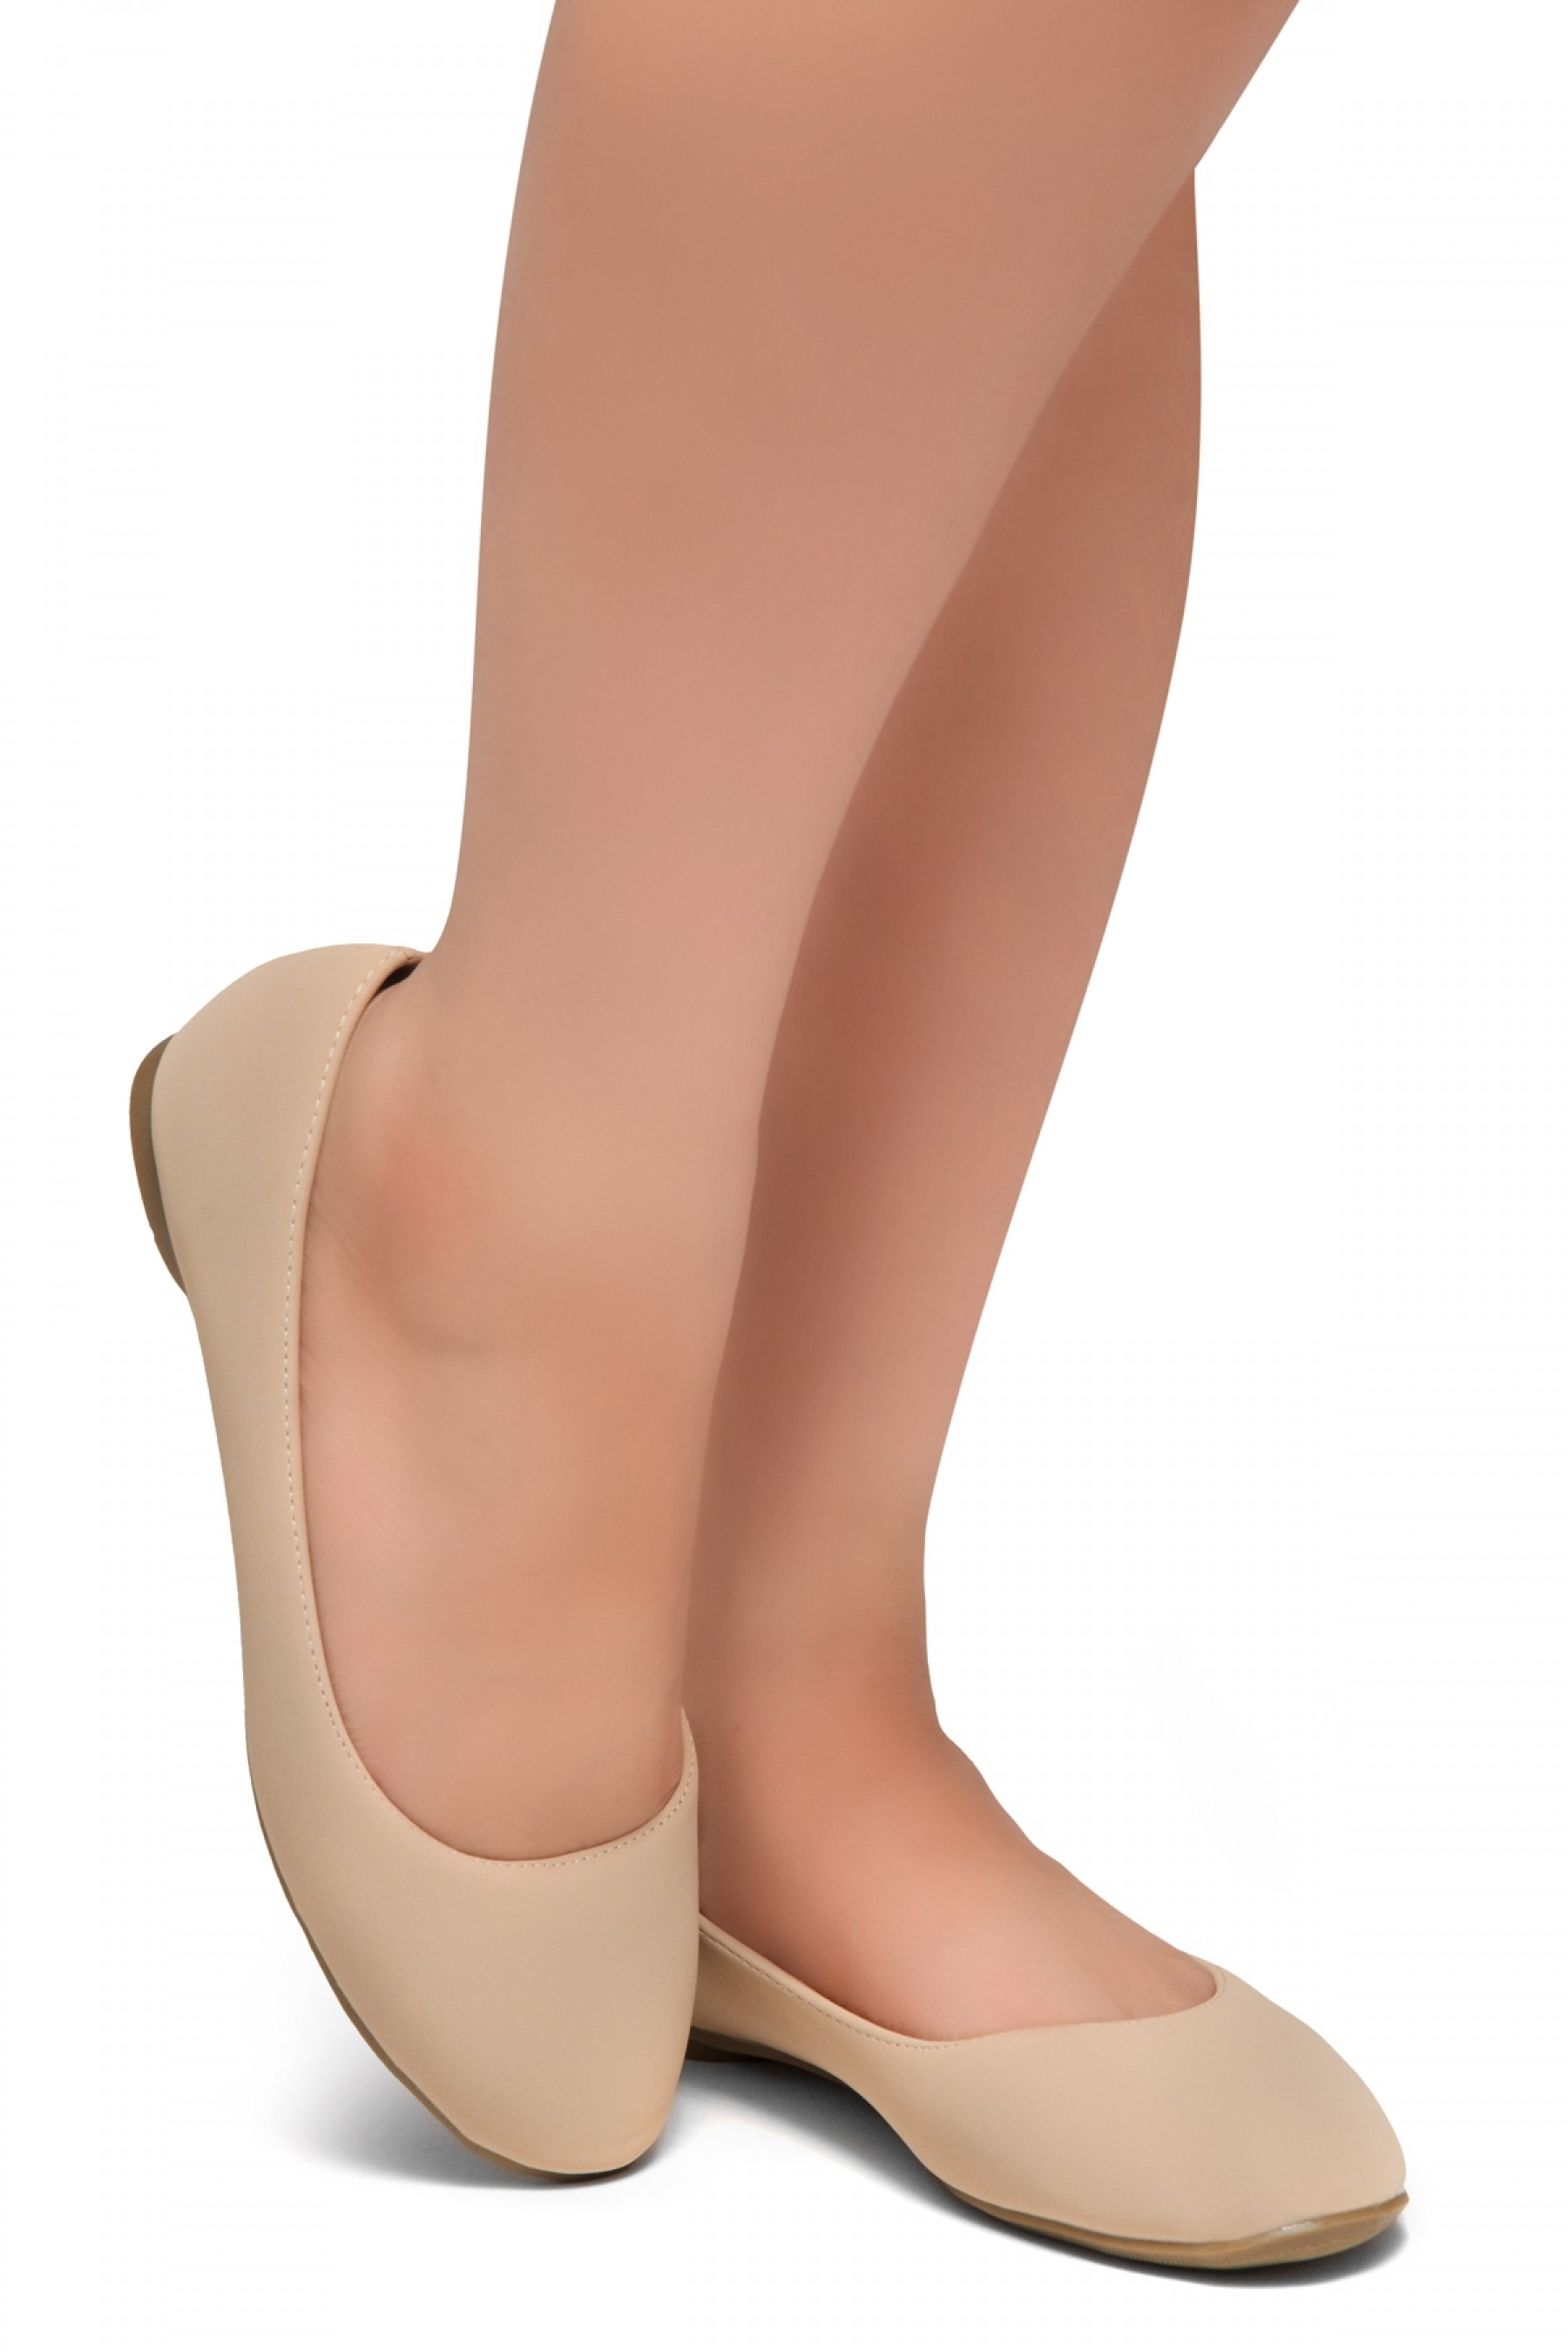 HerStyle Ever Memory -Almond Toe, No detail, Ballet Flat (Nude)